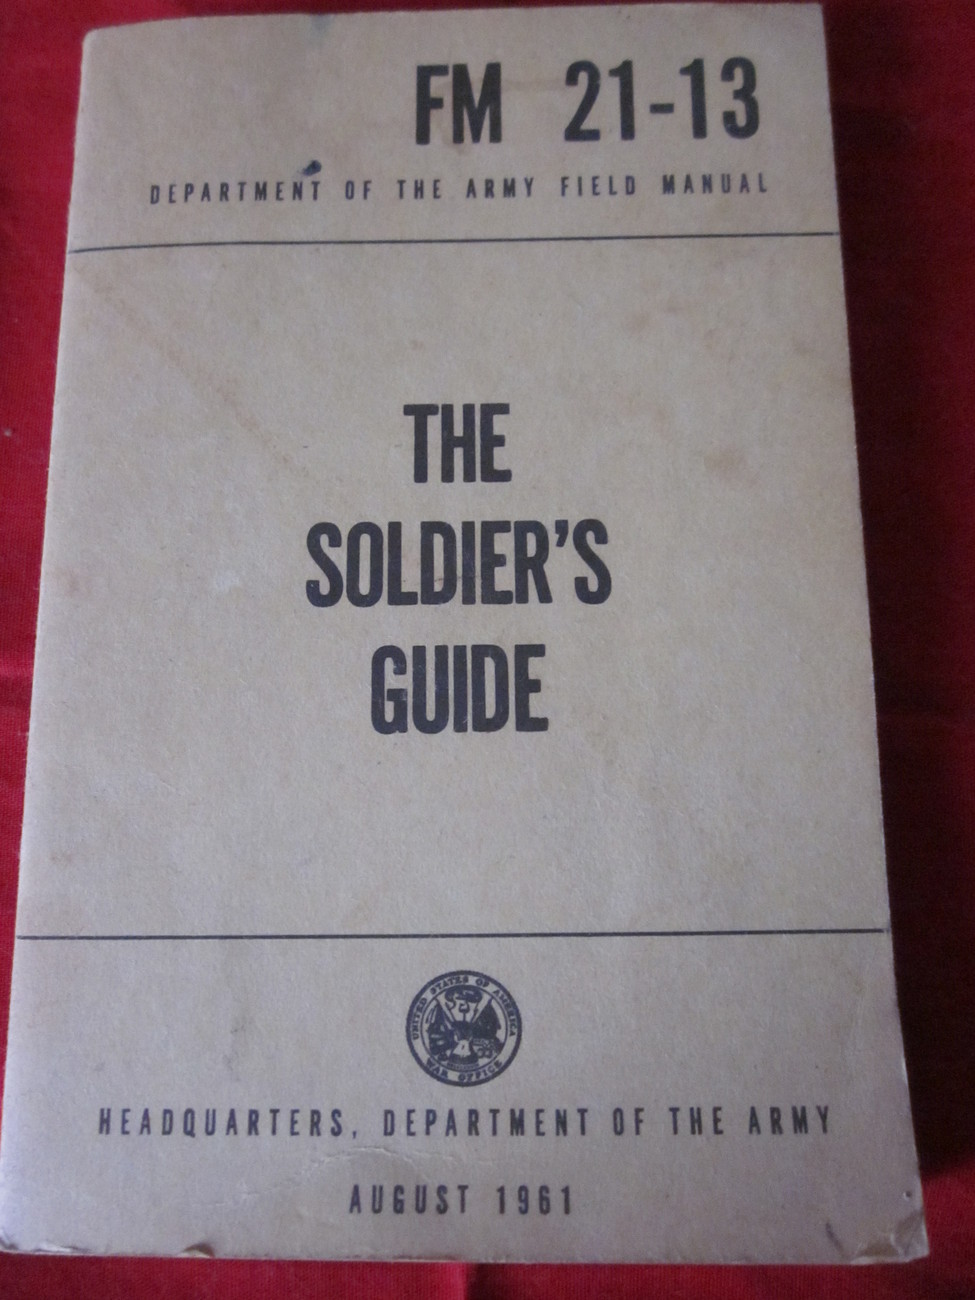 The Soldier's Guide FM 21-13 August 1961 Army Field Manual